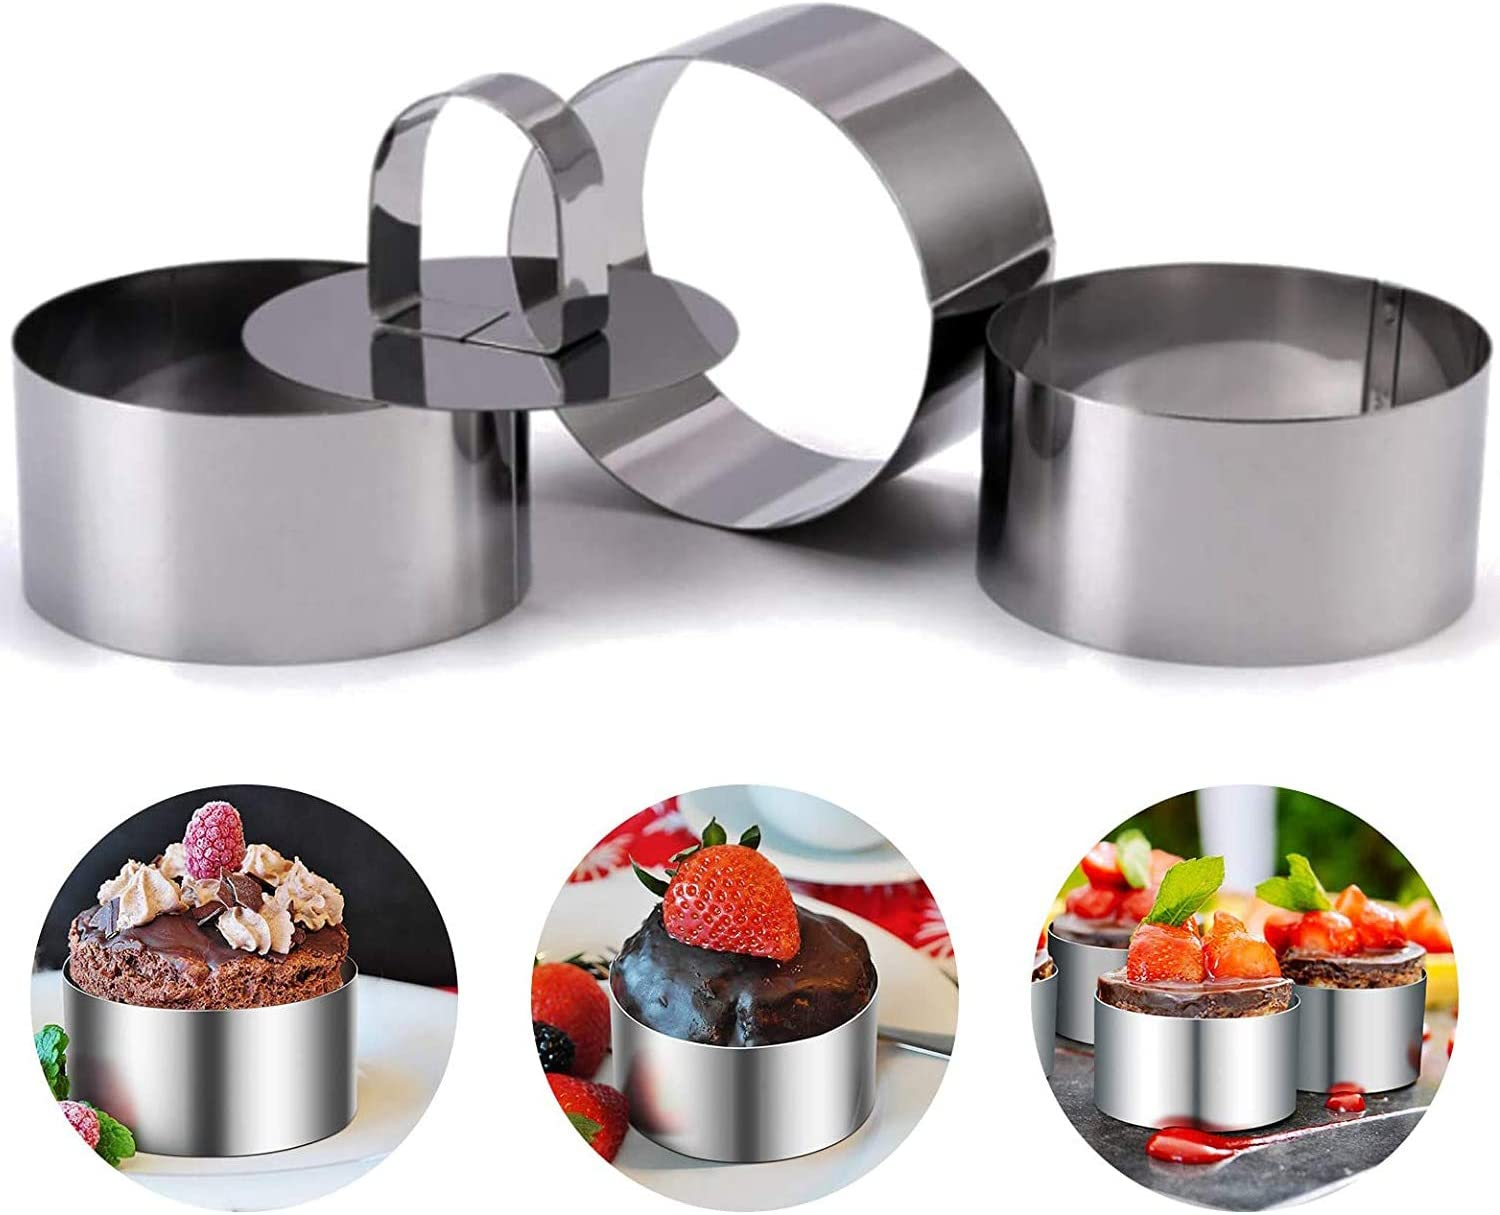 Set of 4 - Round Stainless Steel Small Cake Rings - Mousse Cake Molds and Pastry Mini Baking Ring - Food Ring Mould Dessert Rings Set for Pastry Cake Baking-Set of 4 with 4 Pusher